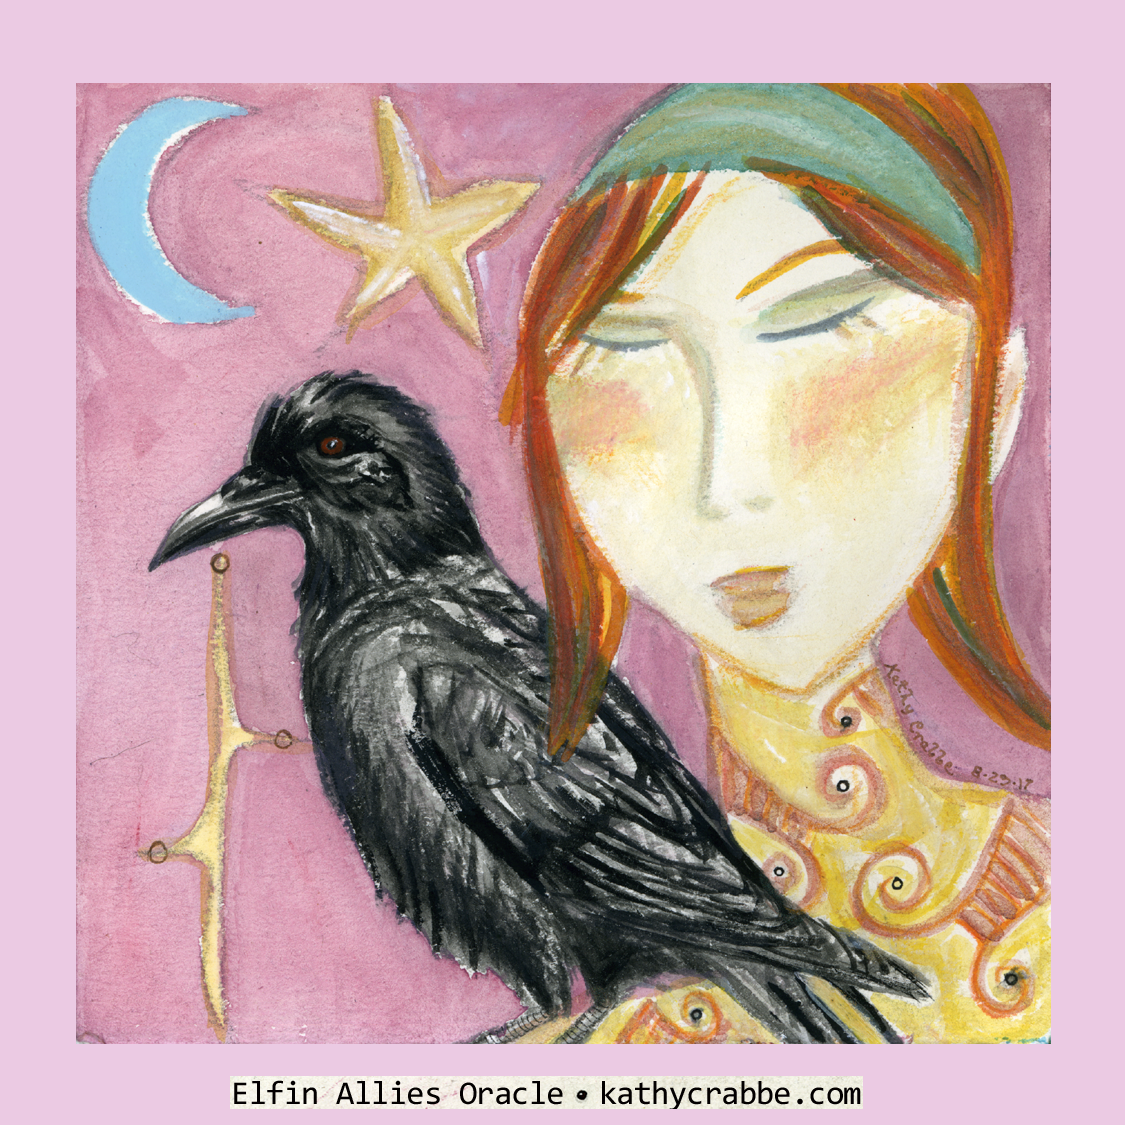 Raven Spirit by Kathy Crabbe from the   Elfin Ally Oracle Deck   .